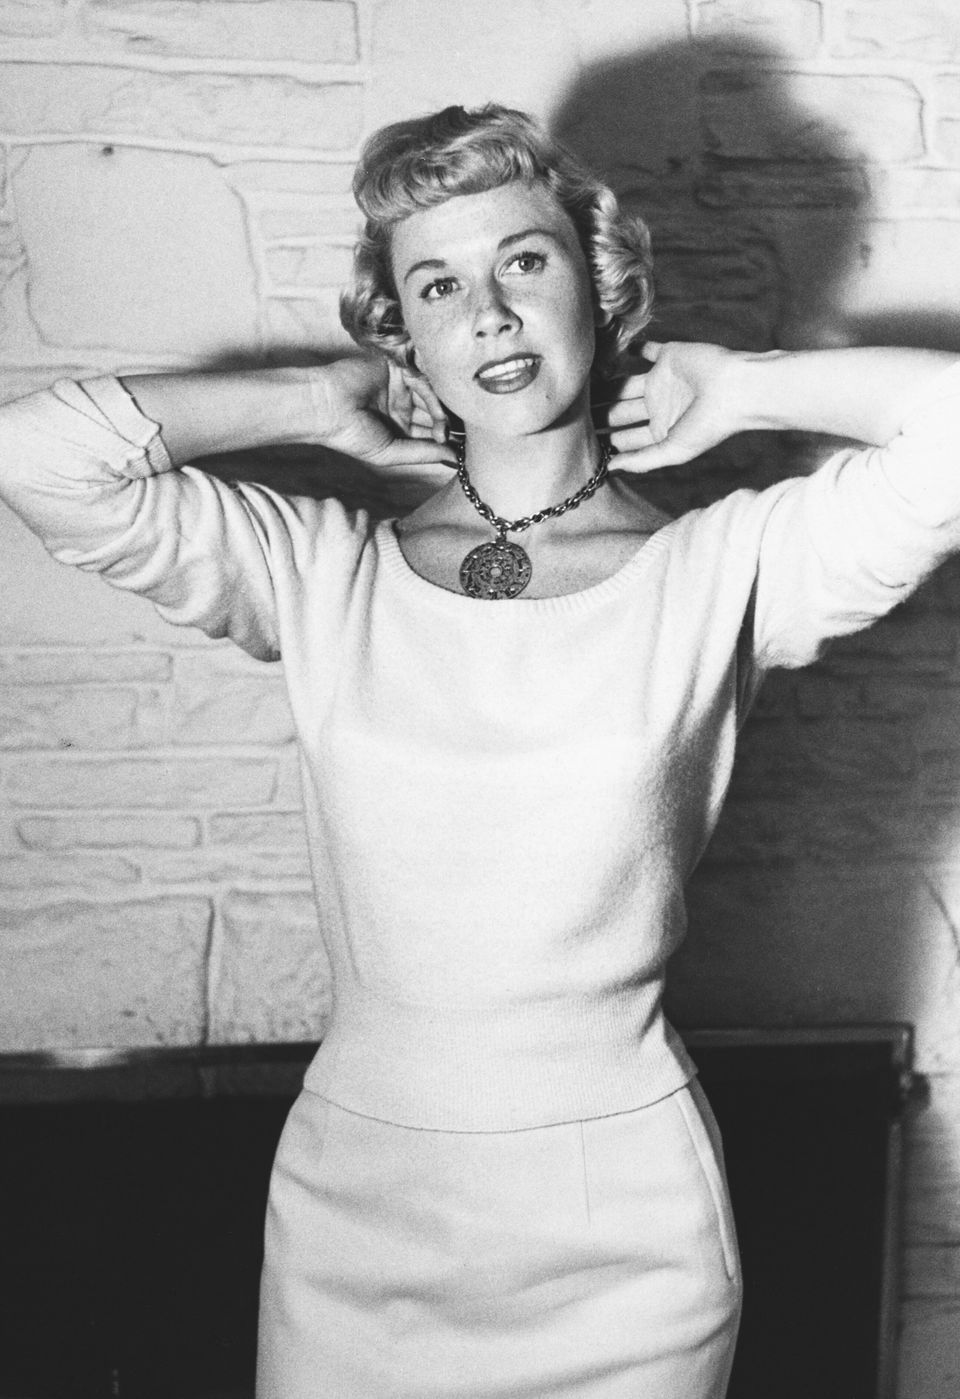 Westlake Legal Group 5cd97d1c2100003500d06641 A Look Back At Doris Day's Life And Career In Photos